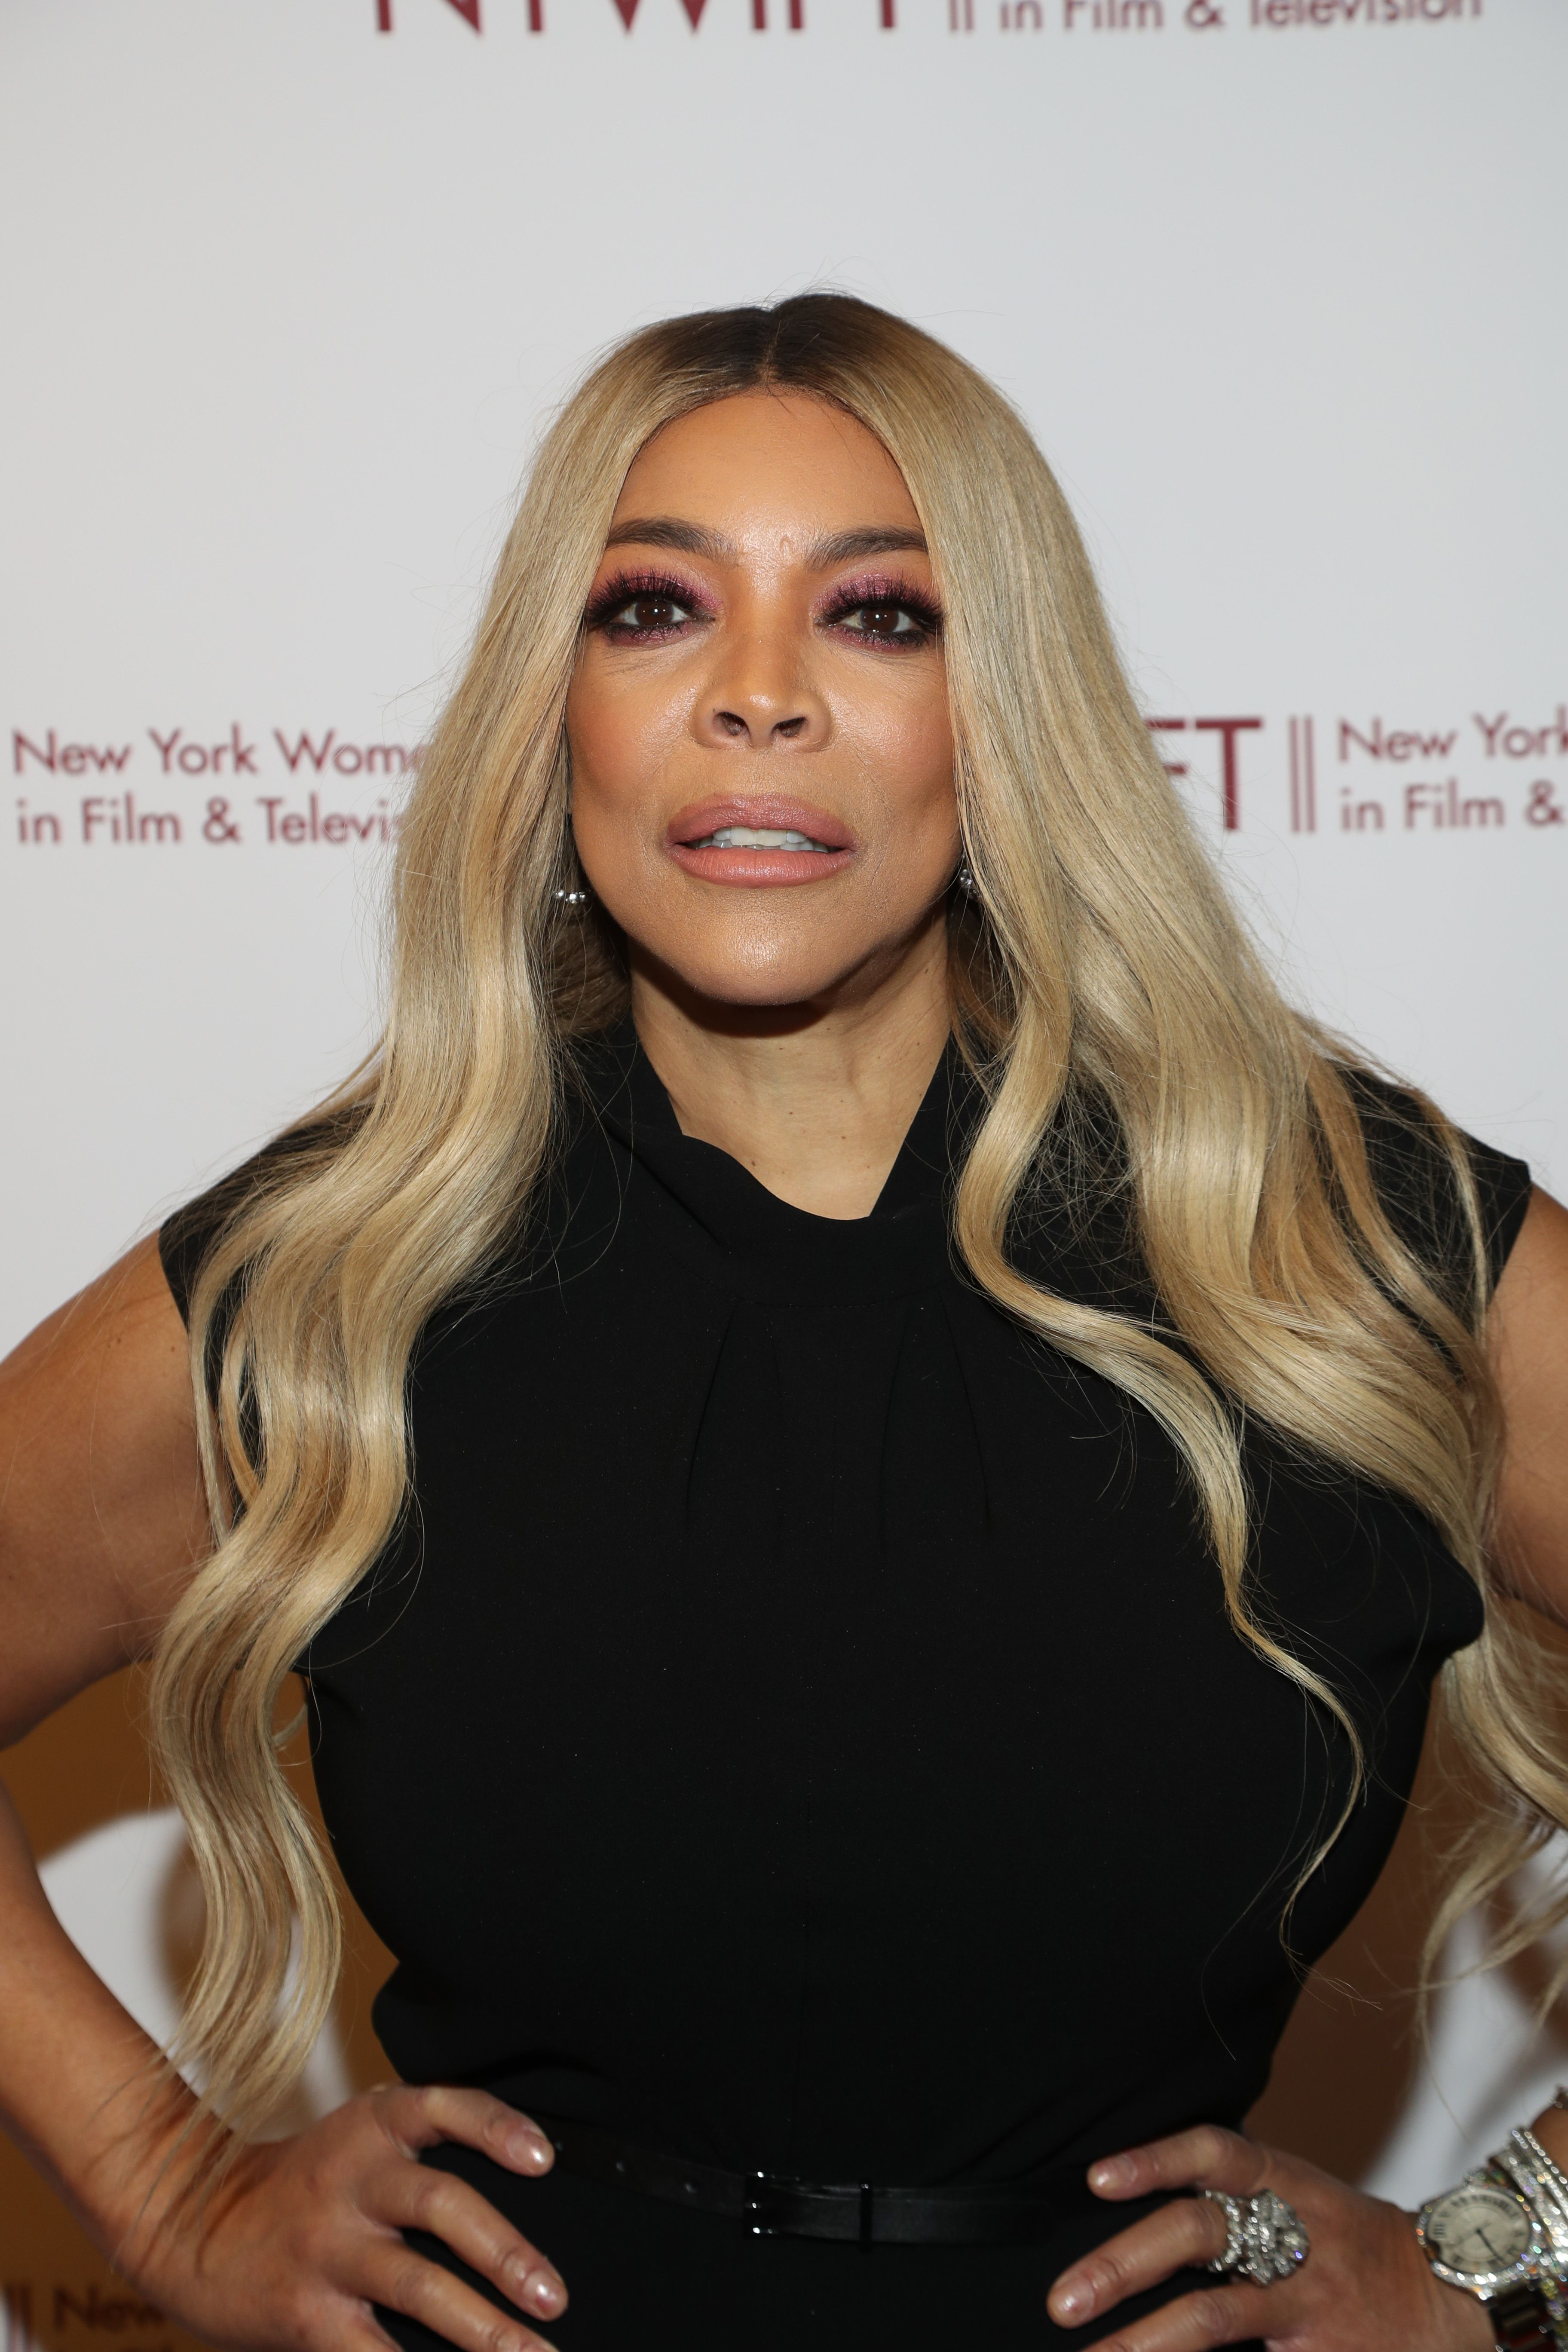 Controversial talk show host, Wendy Williams under fire yet again